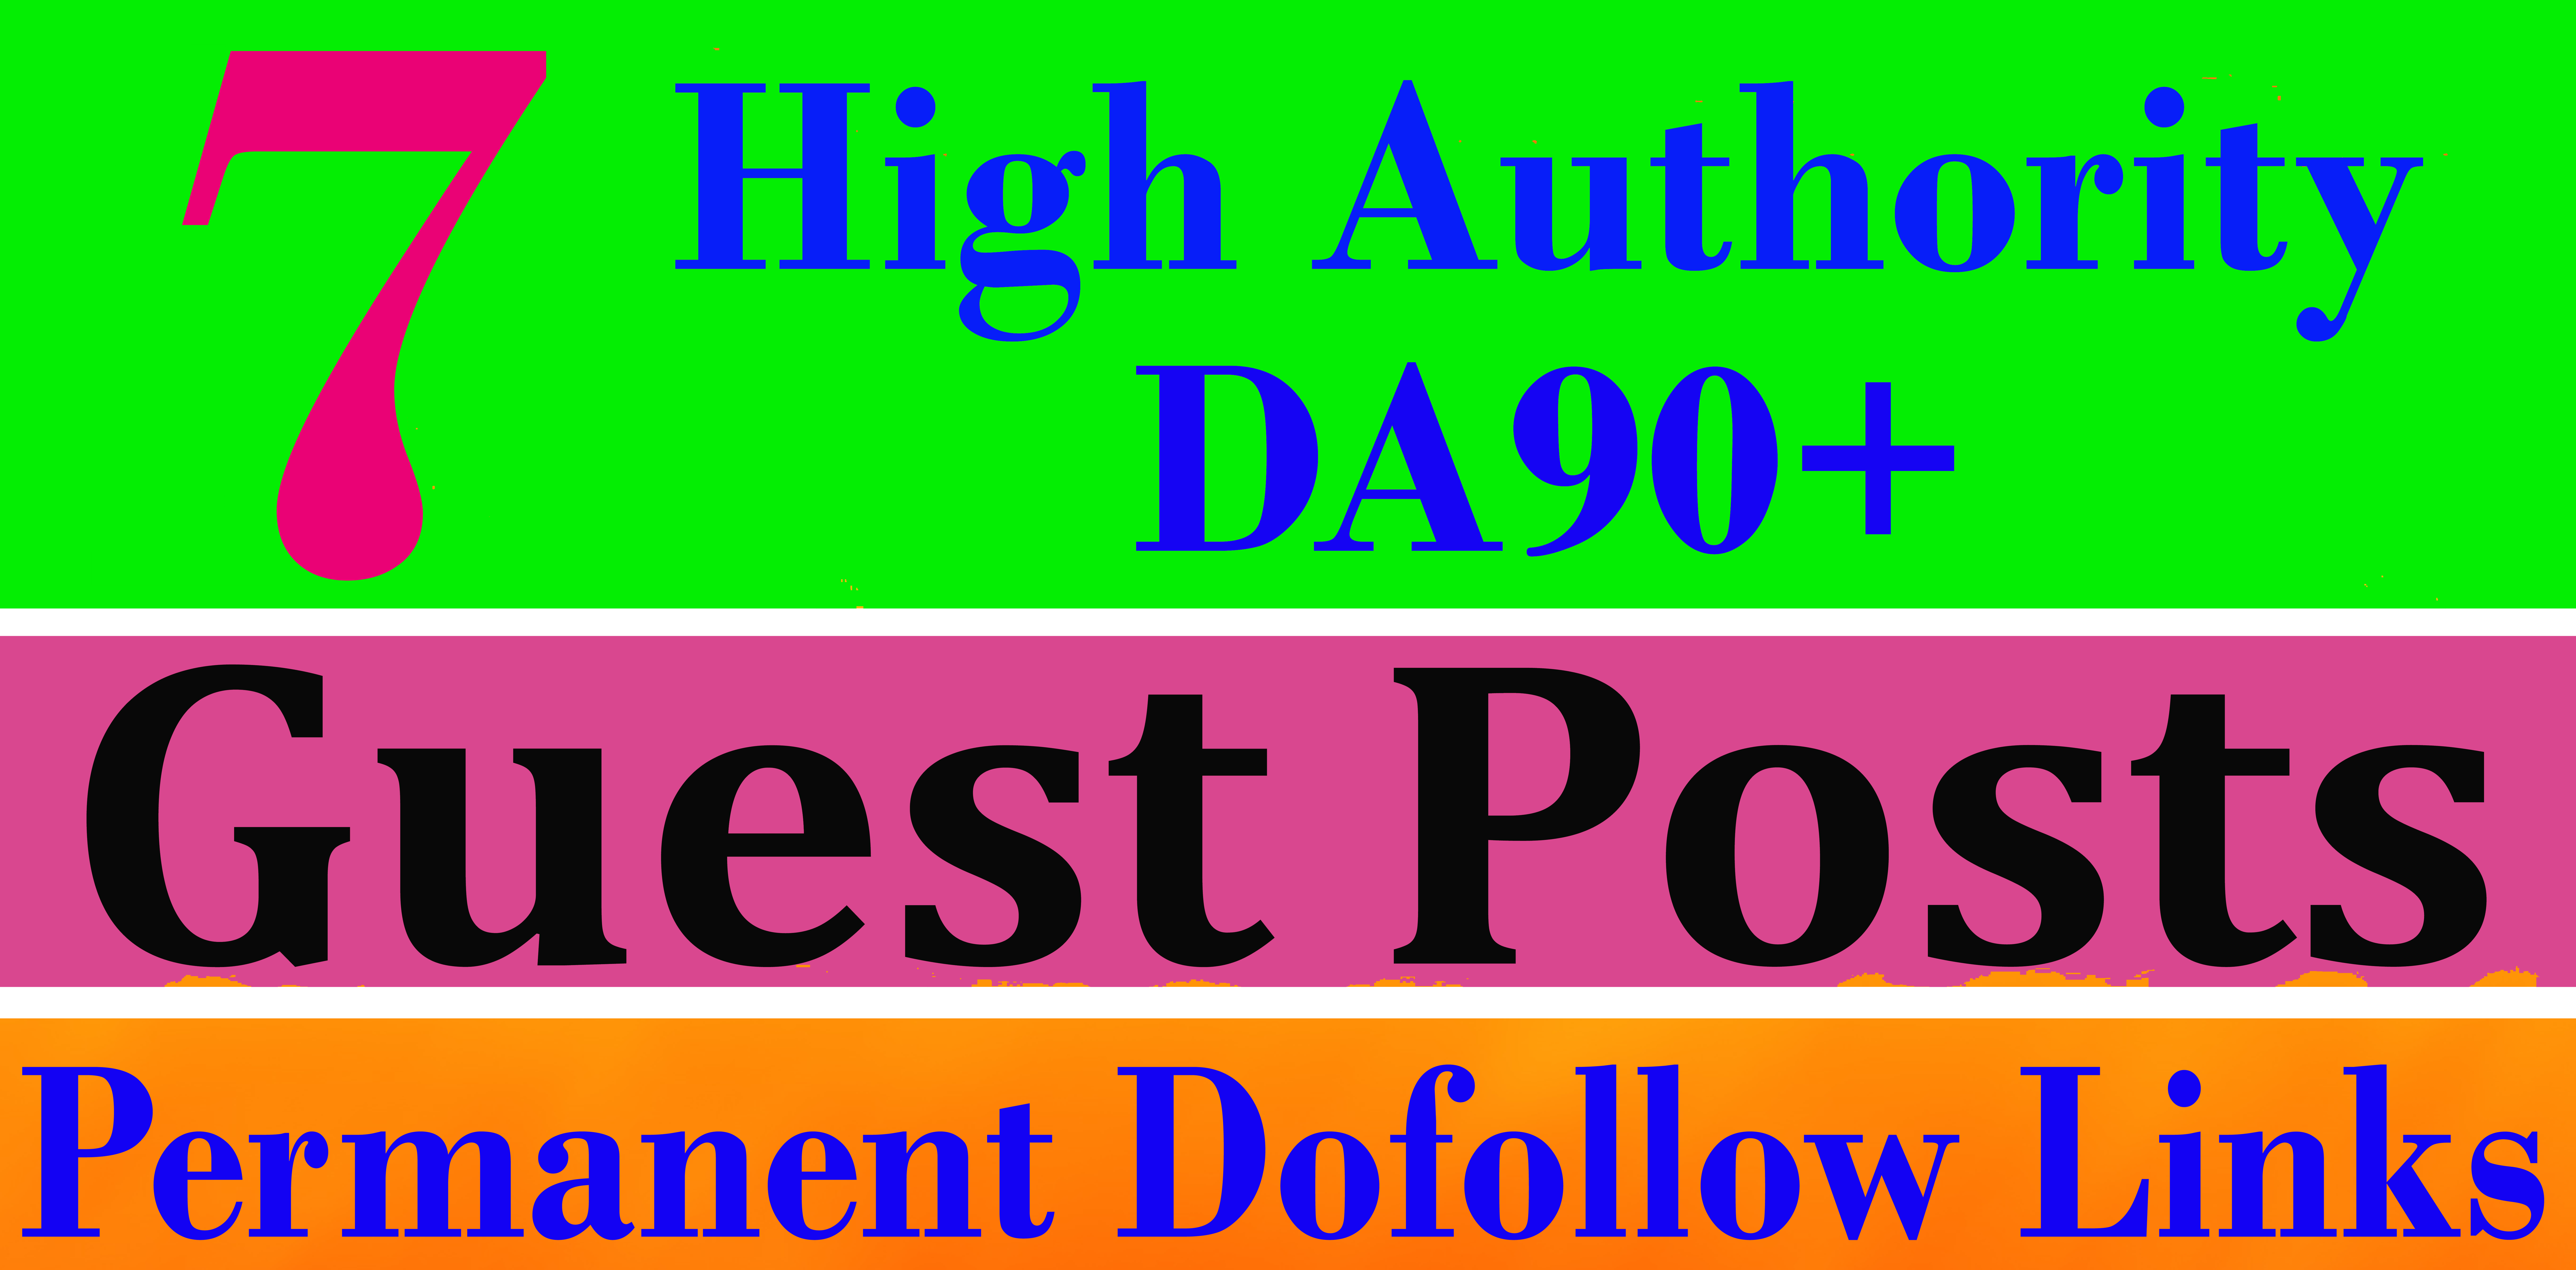 write and publish 7 high quality Dofollow guest posts DA90 plus a